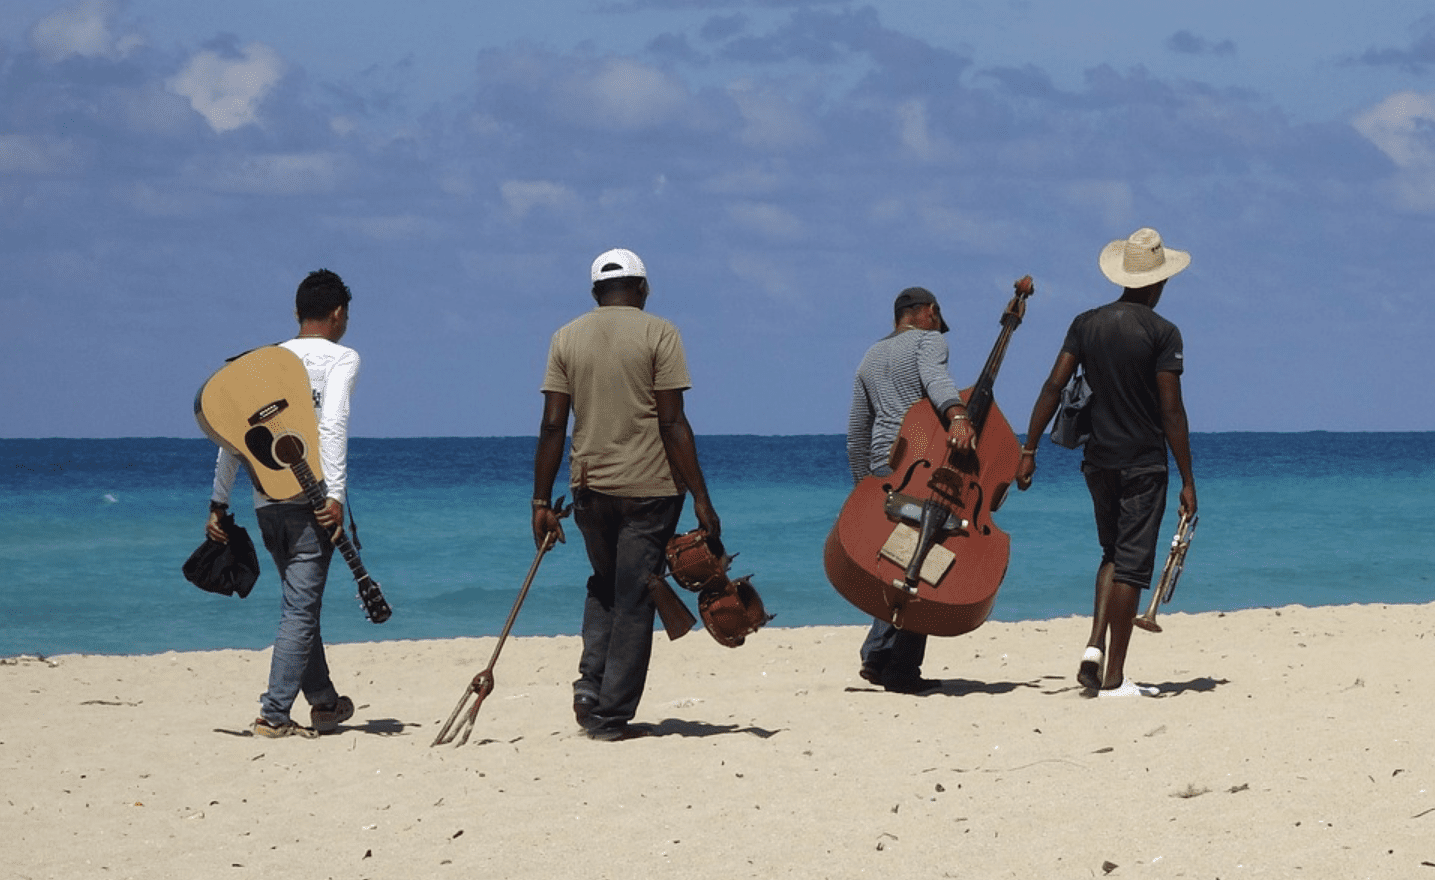 Jazz musicians on the beach with instruments